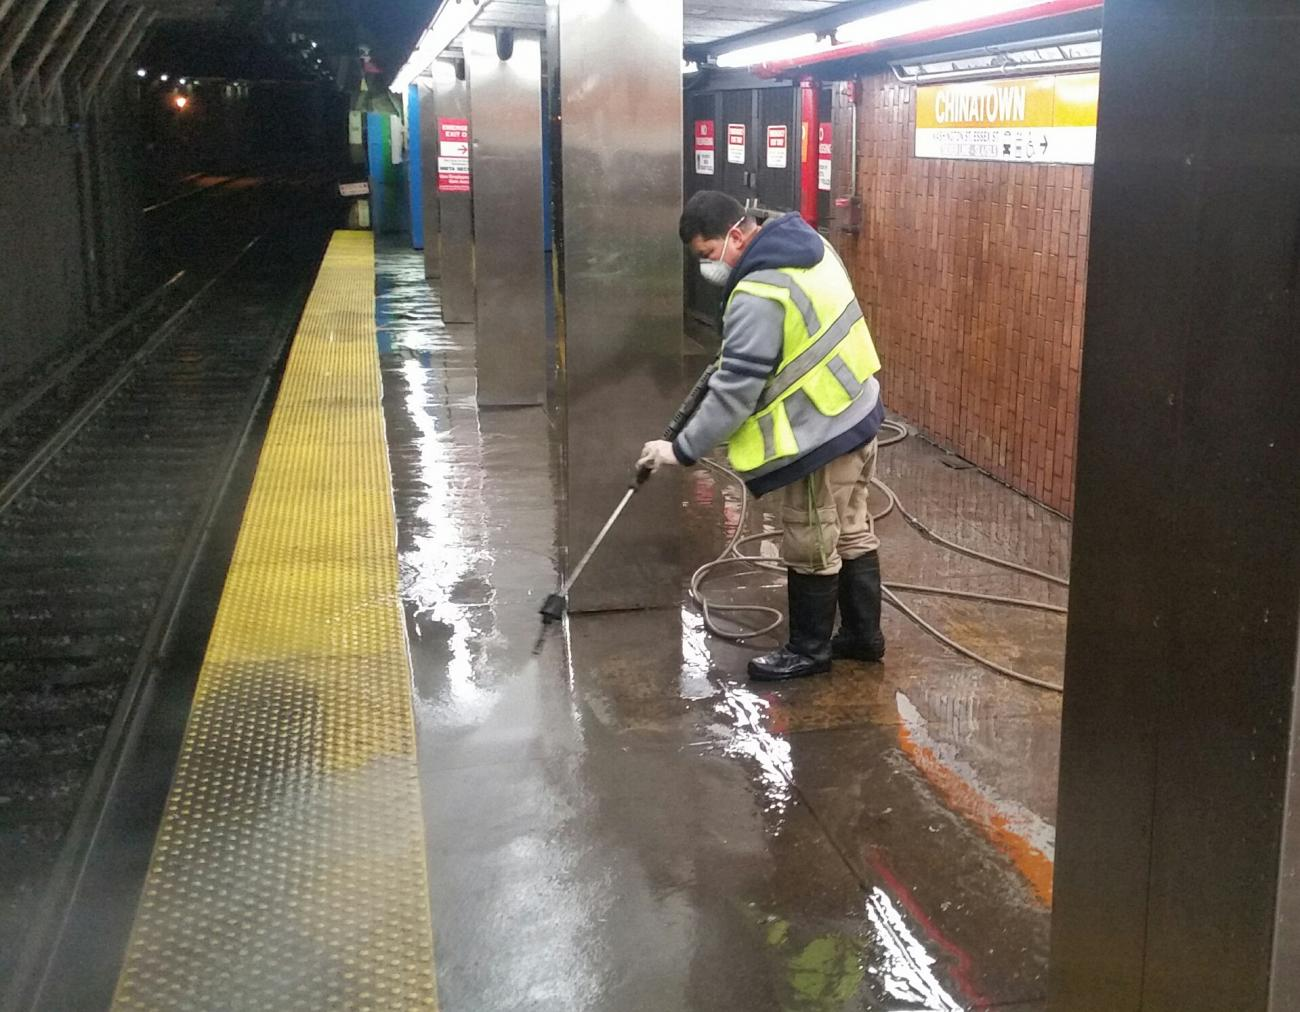 A worker sprays the platform at Chinatown